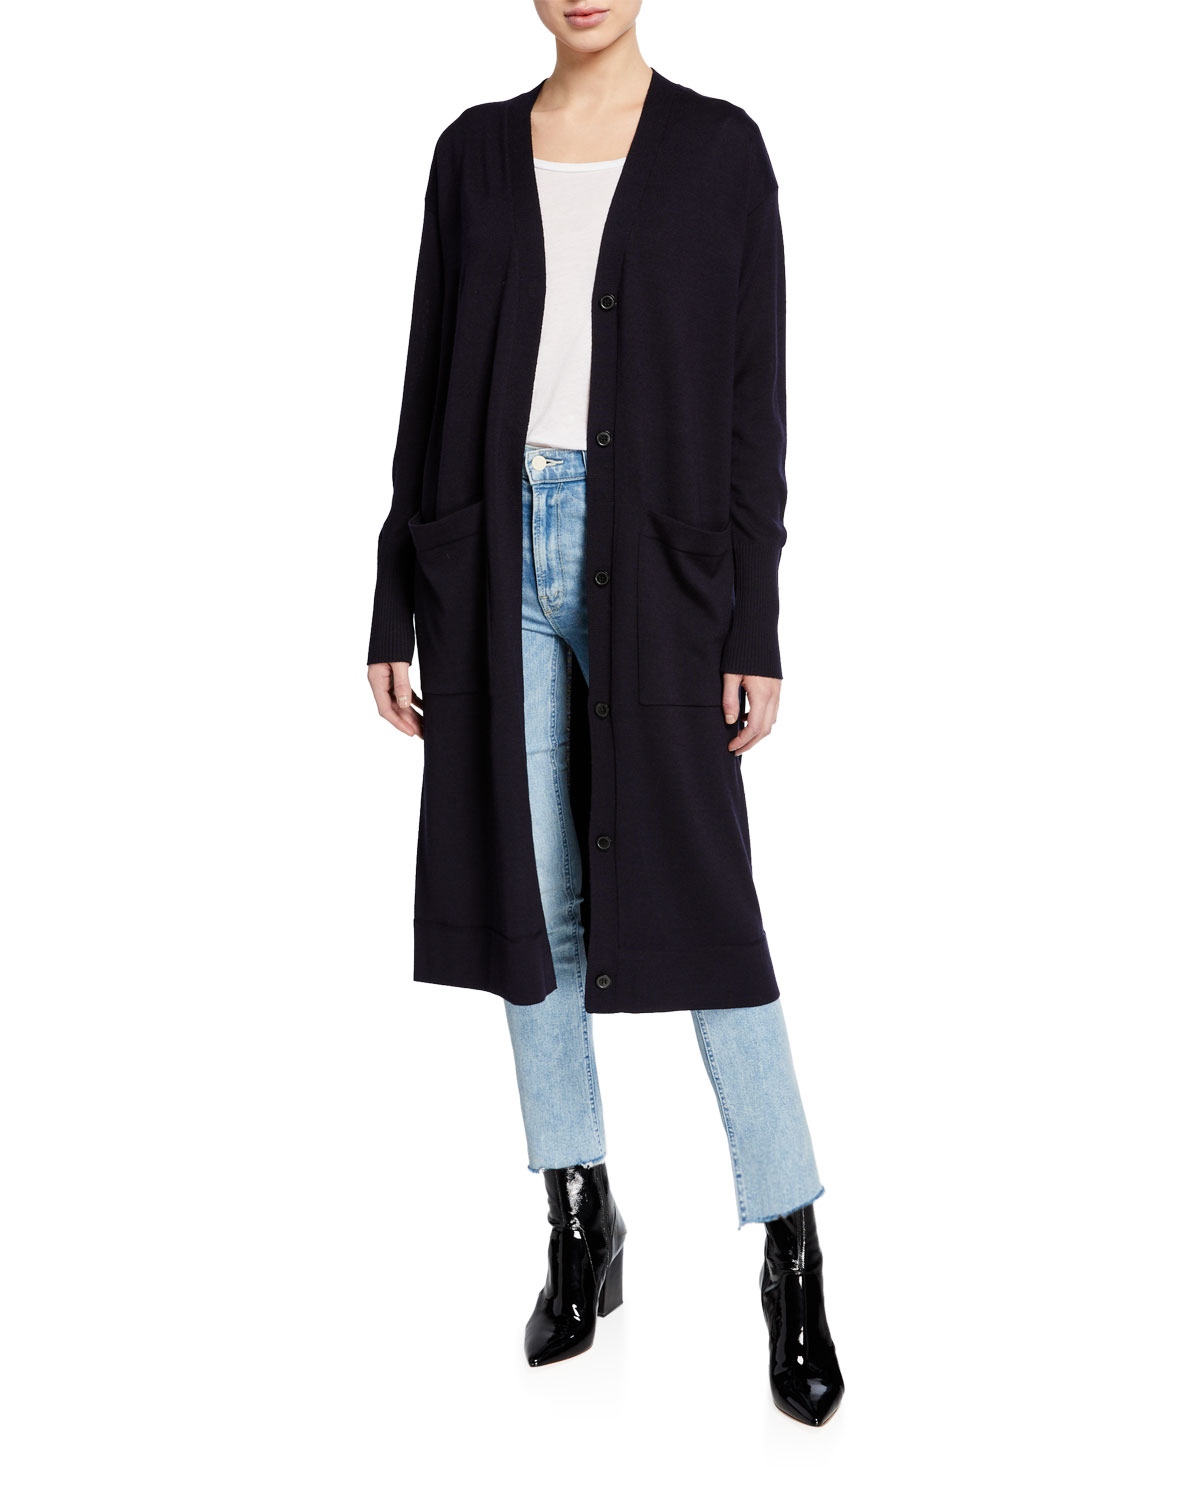 jason wu wool coats for women - Buy best women's jason wu